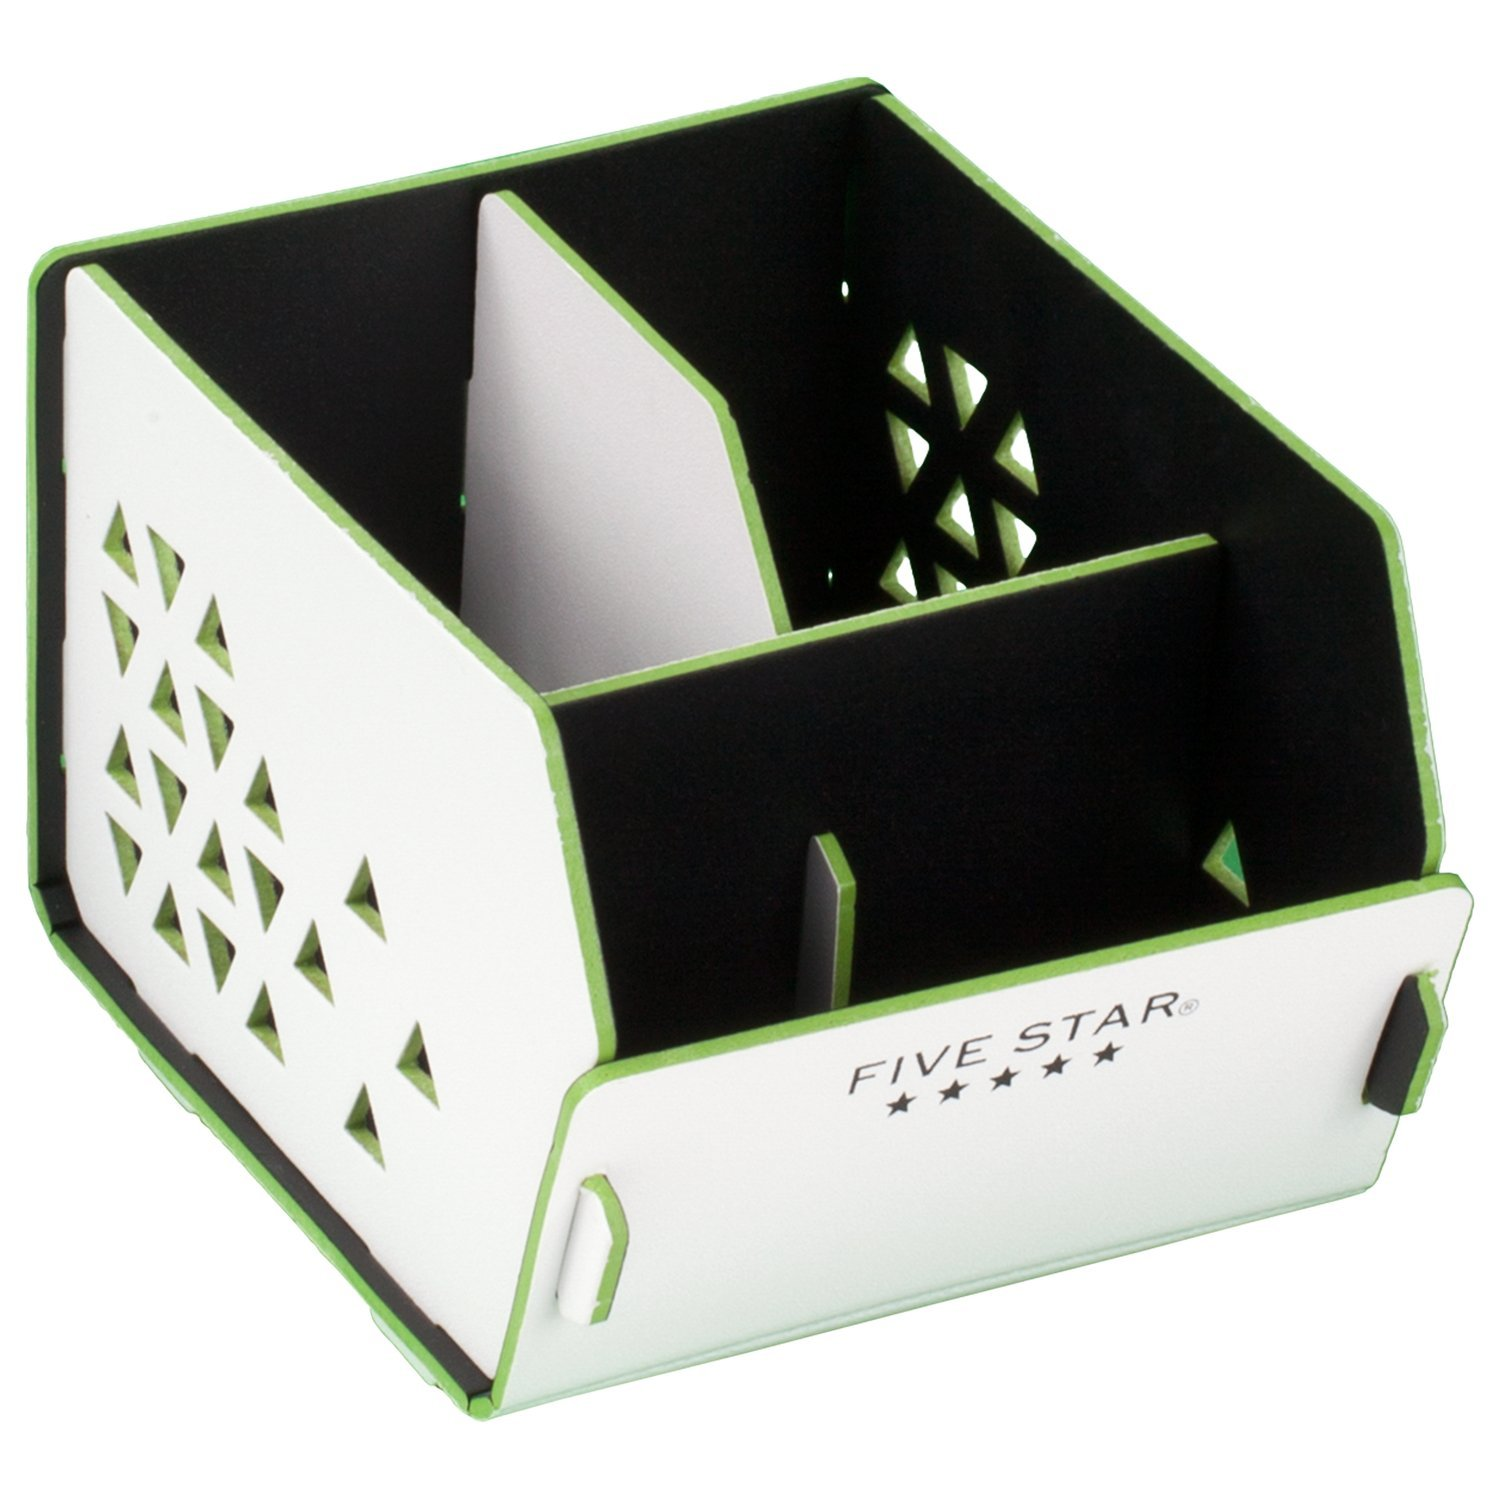 Five Star Desk Organizer, 3 Compartments, Caddy, White / Lime (73678)